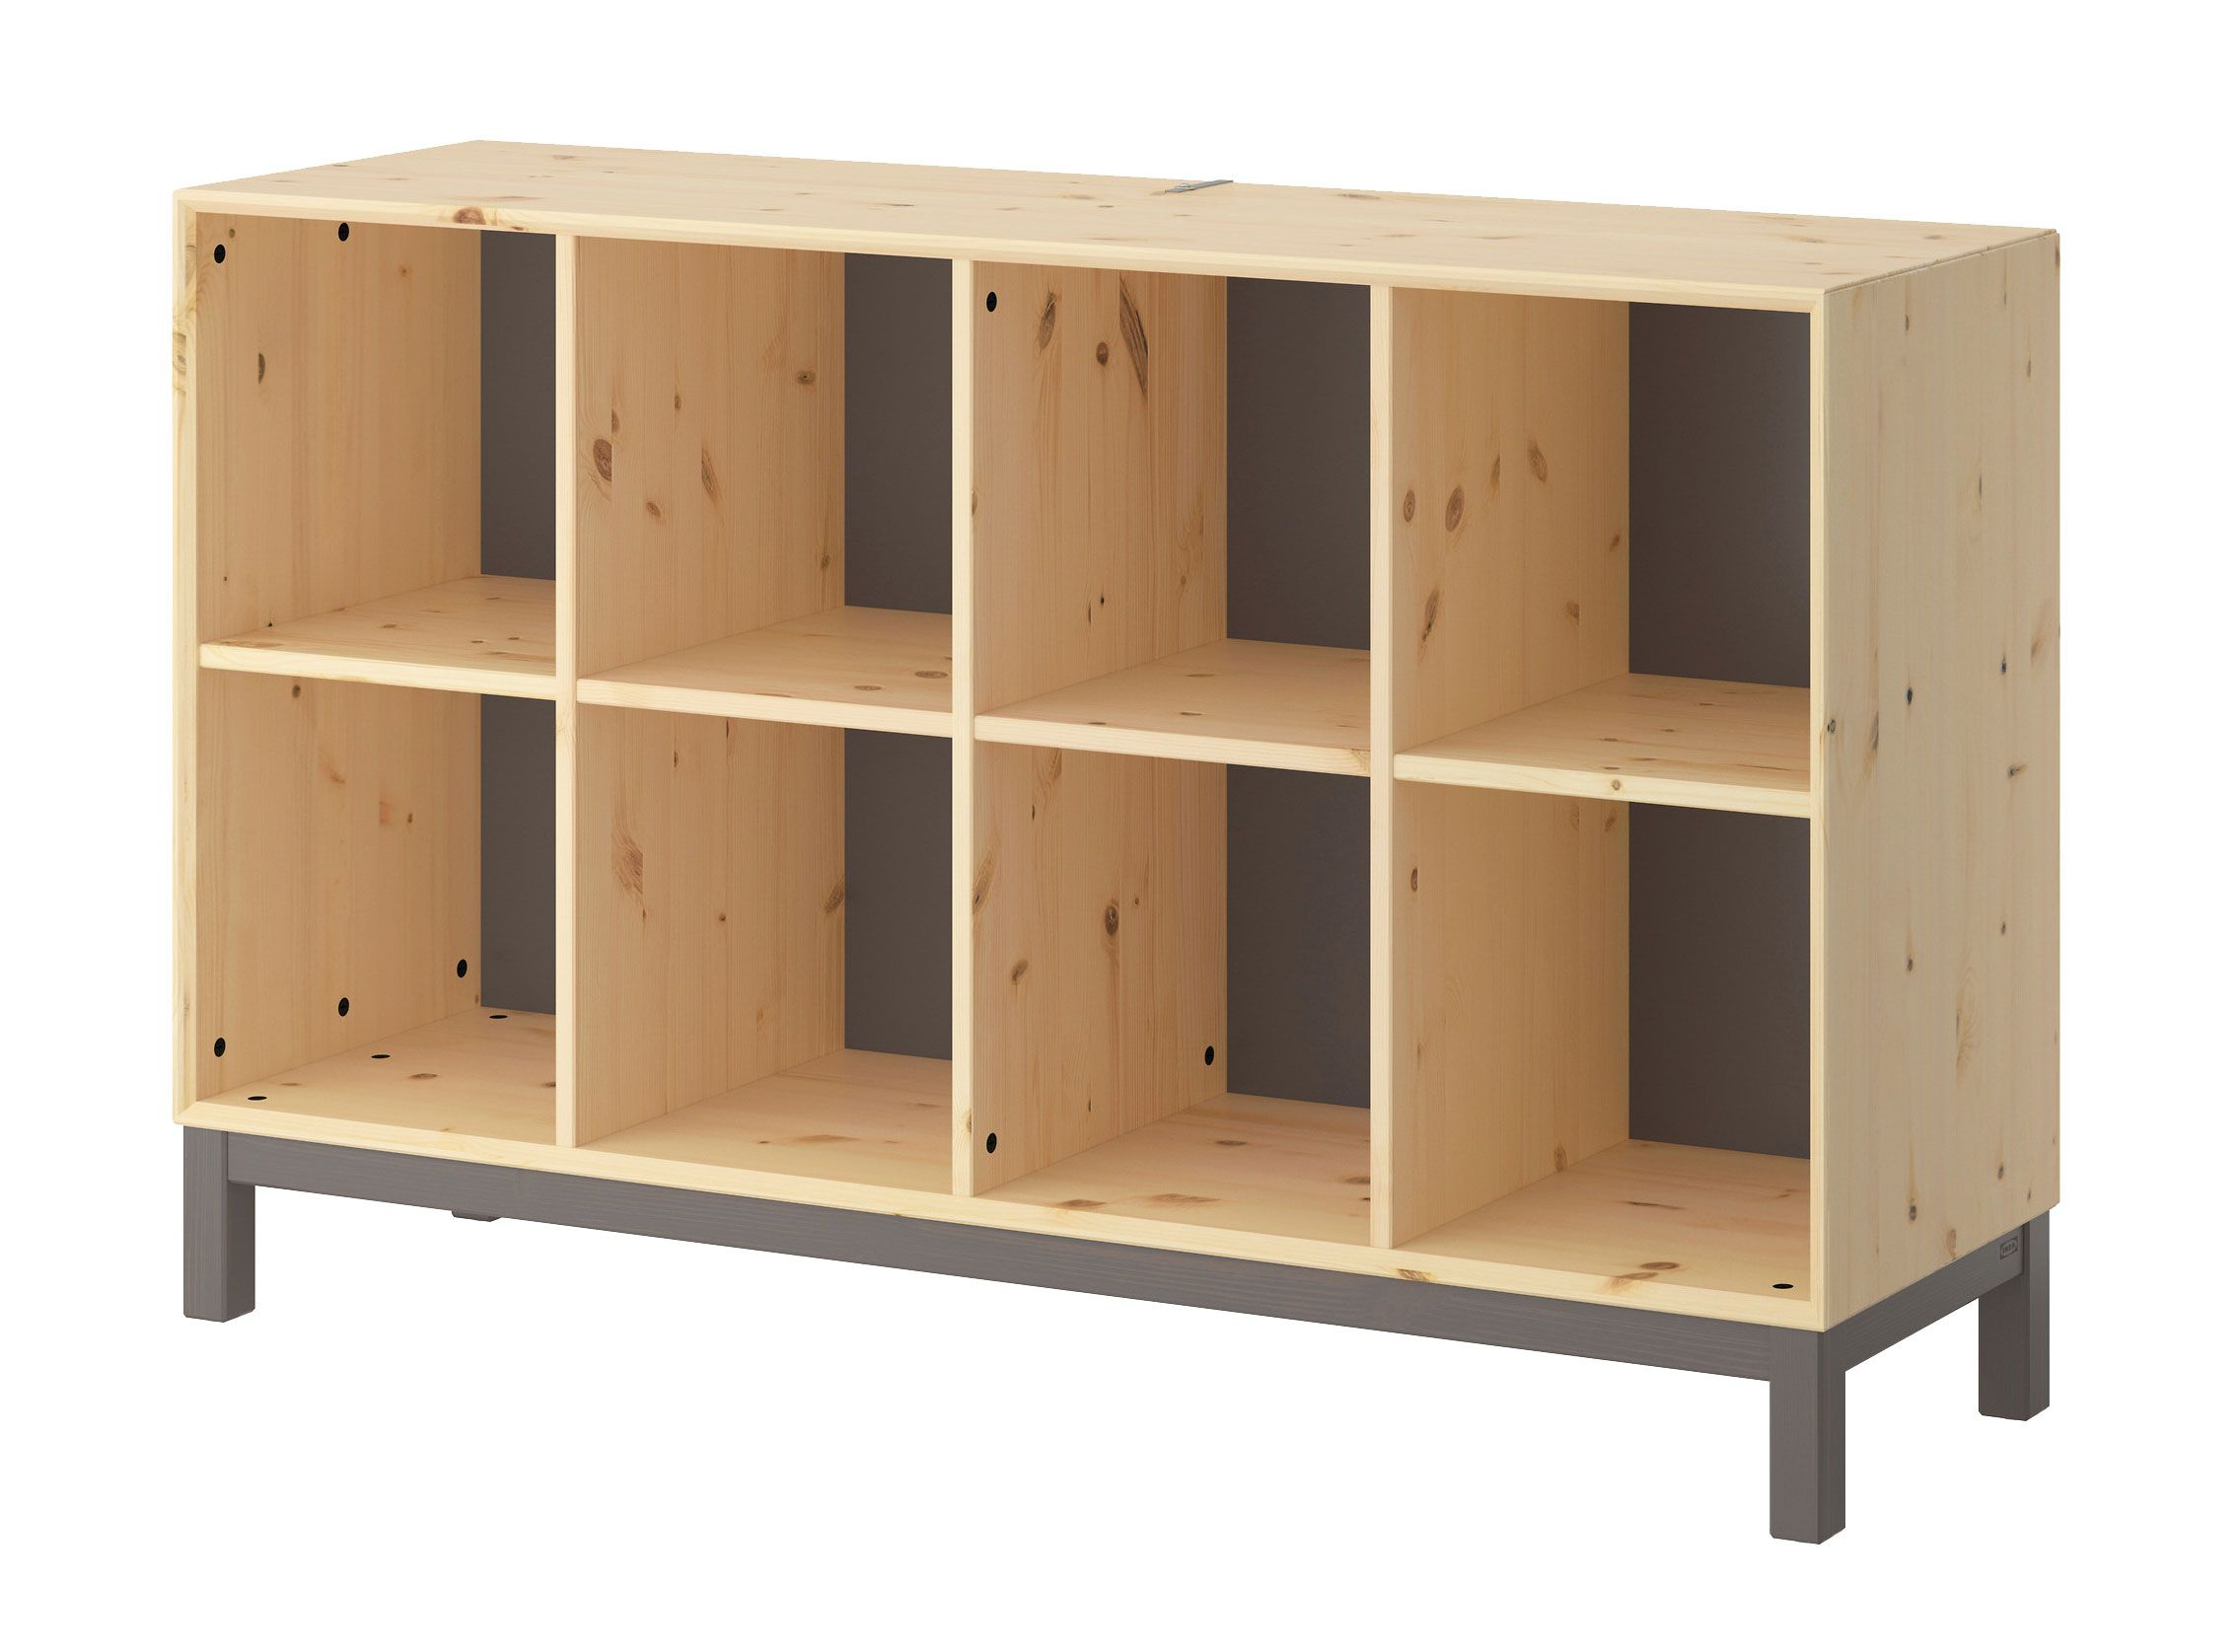 small resolution of norn s sideboard basic unit ikea instead of two fold up tables for placing volunteer snacks 2 of these side by side gives table space for food